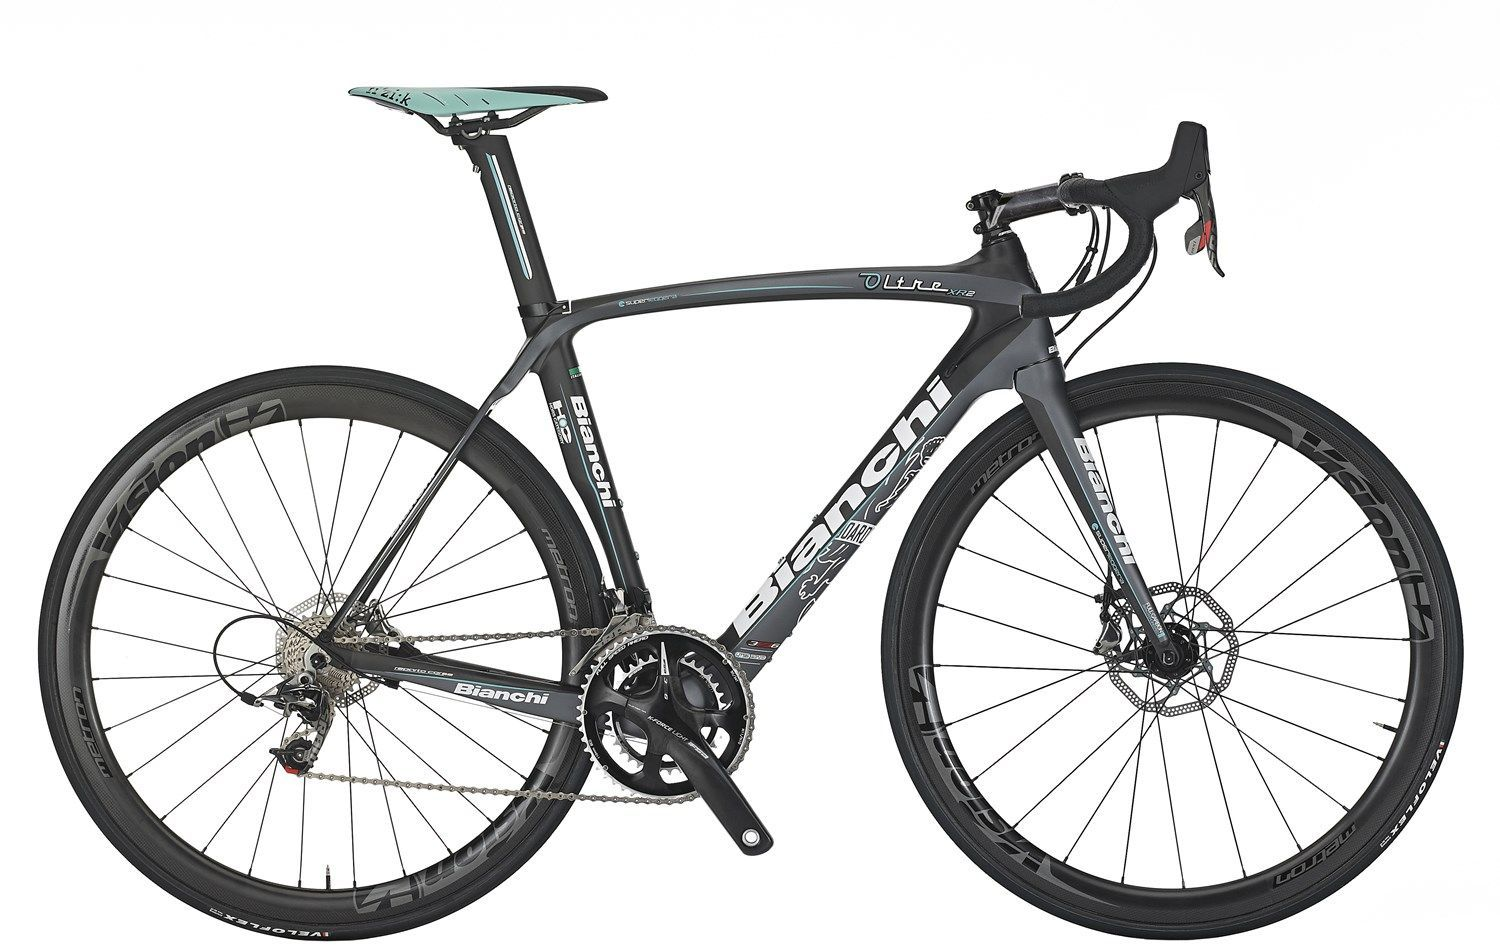 Bianchi Oltre Xr2 Disc Sram Red 11sp Compact Disc 2014